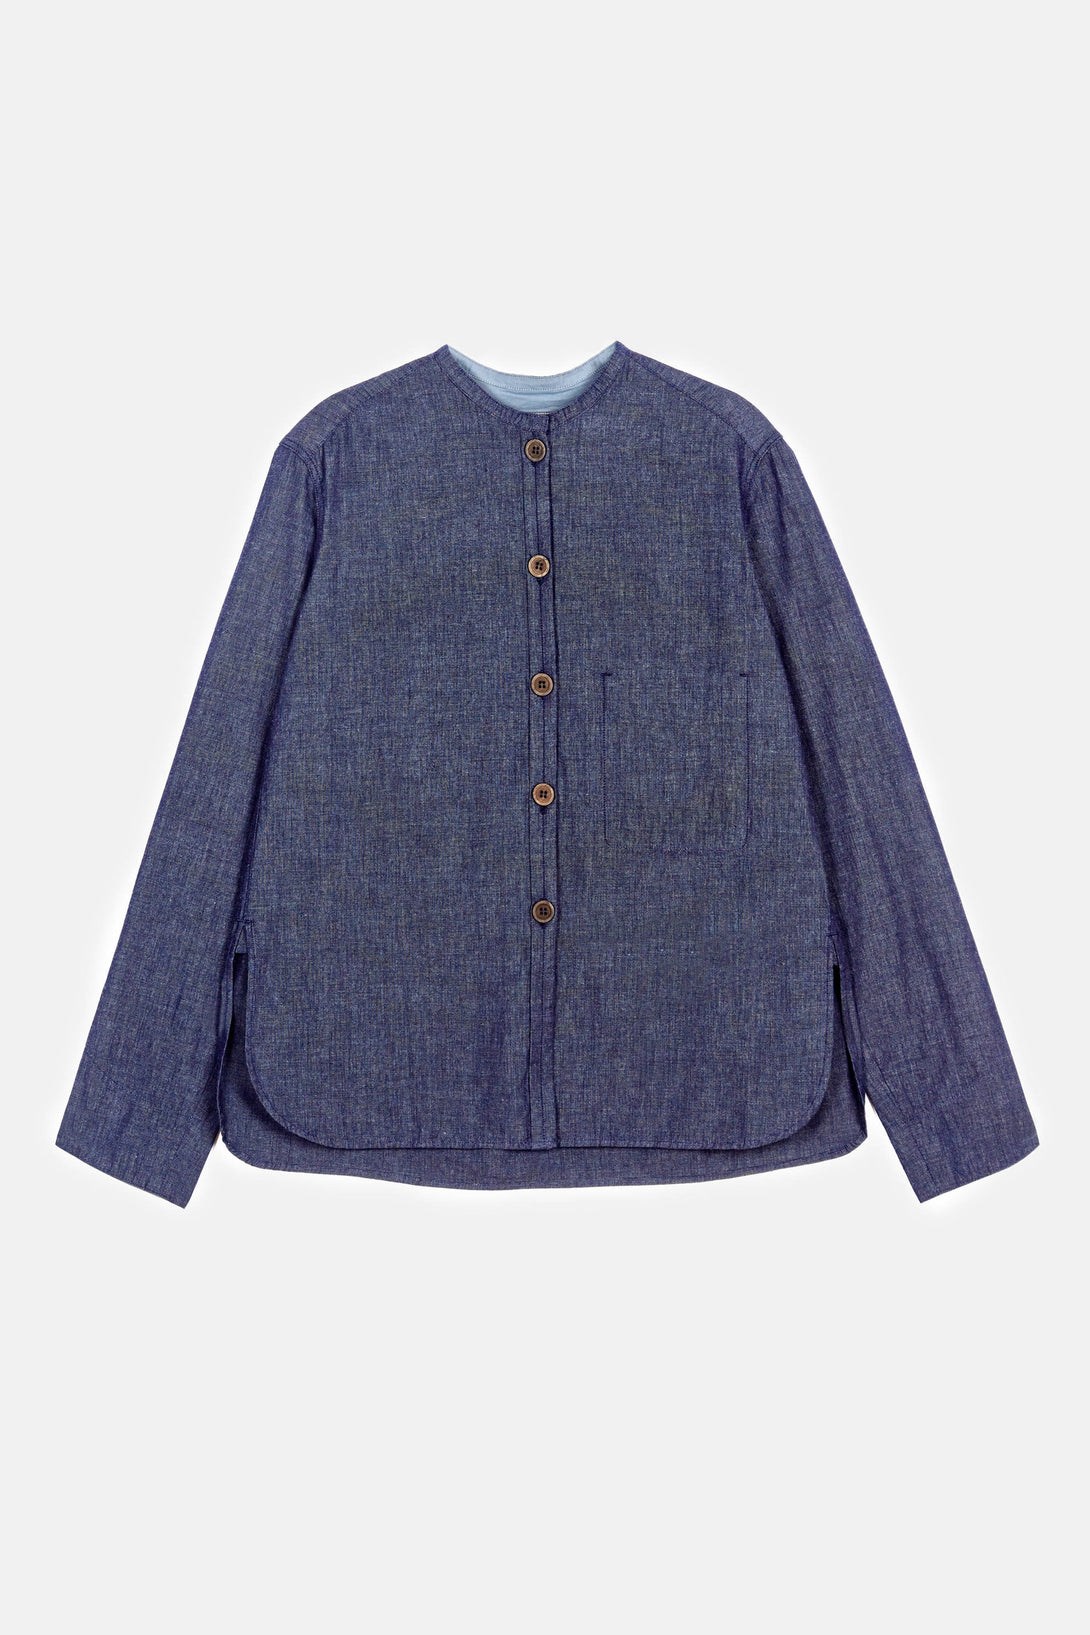 Officer Collar Shirt 2 - Indigo Blue